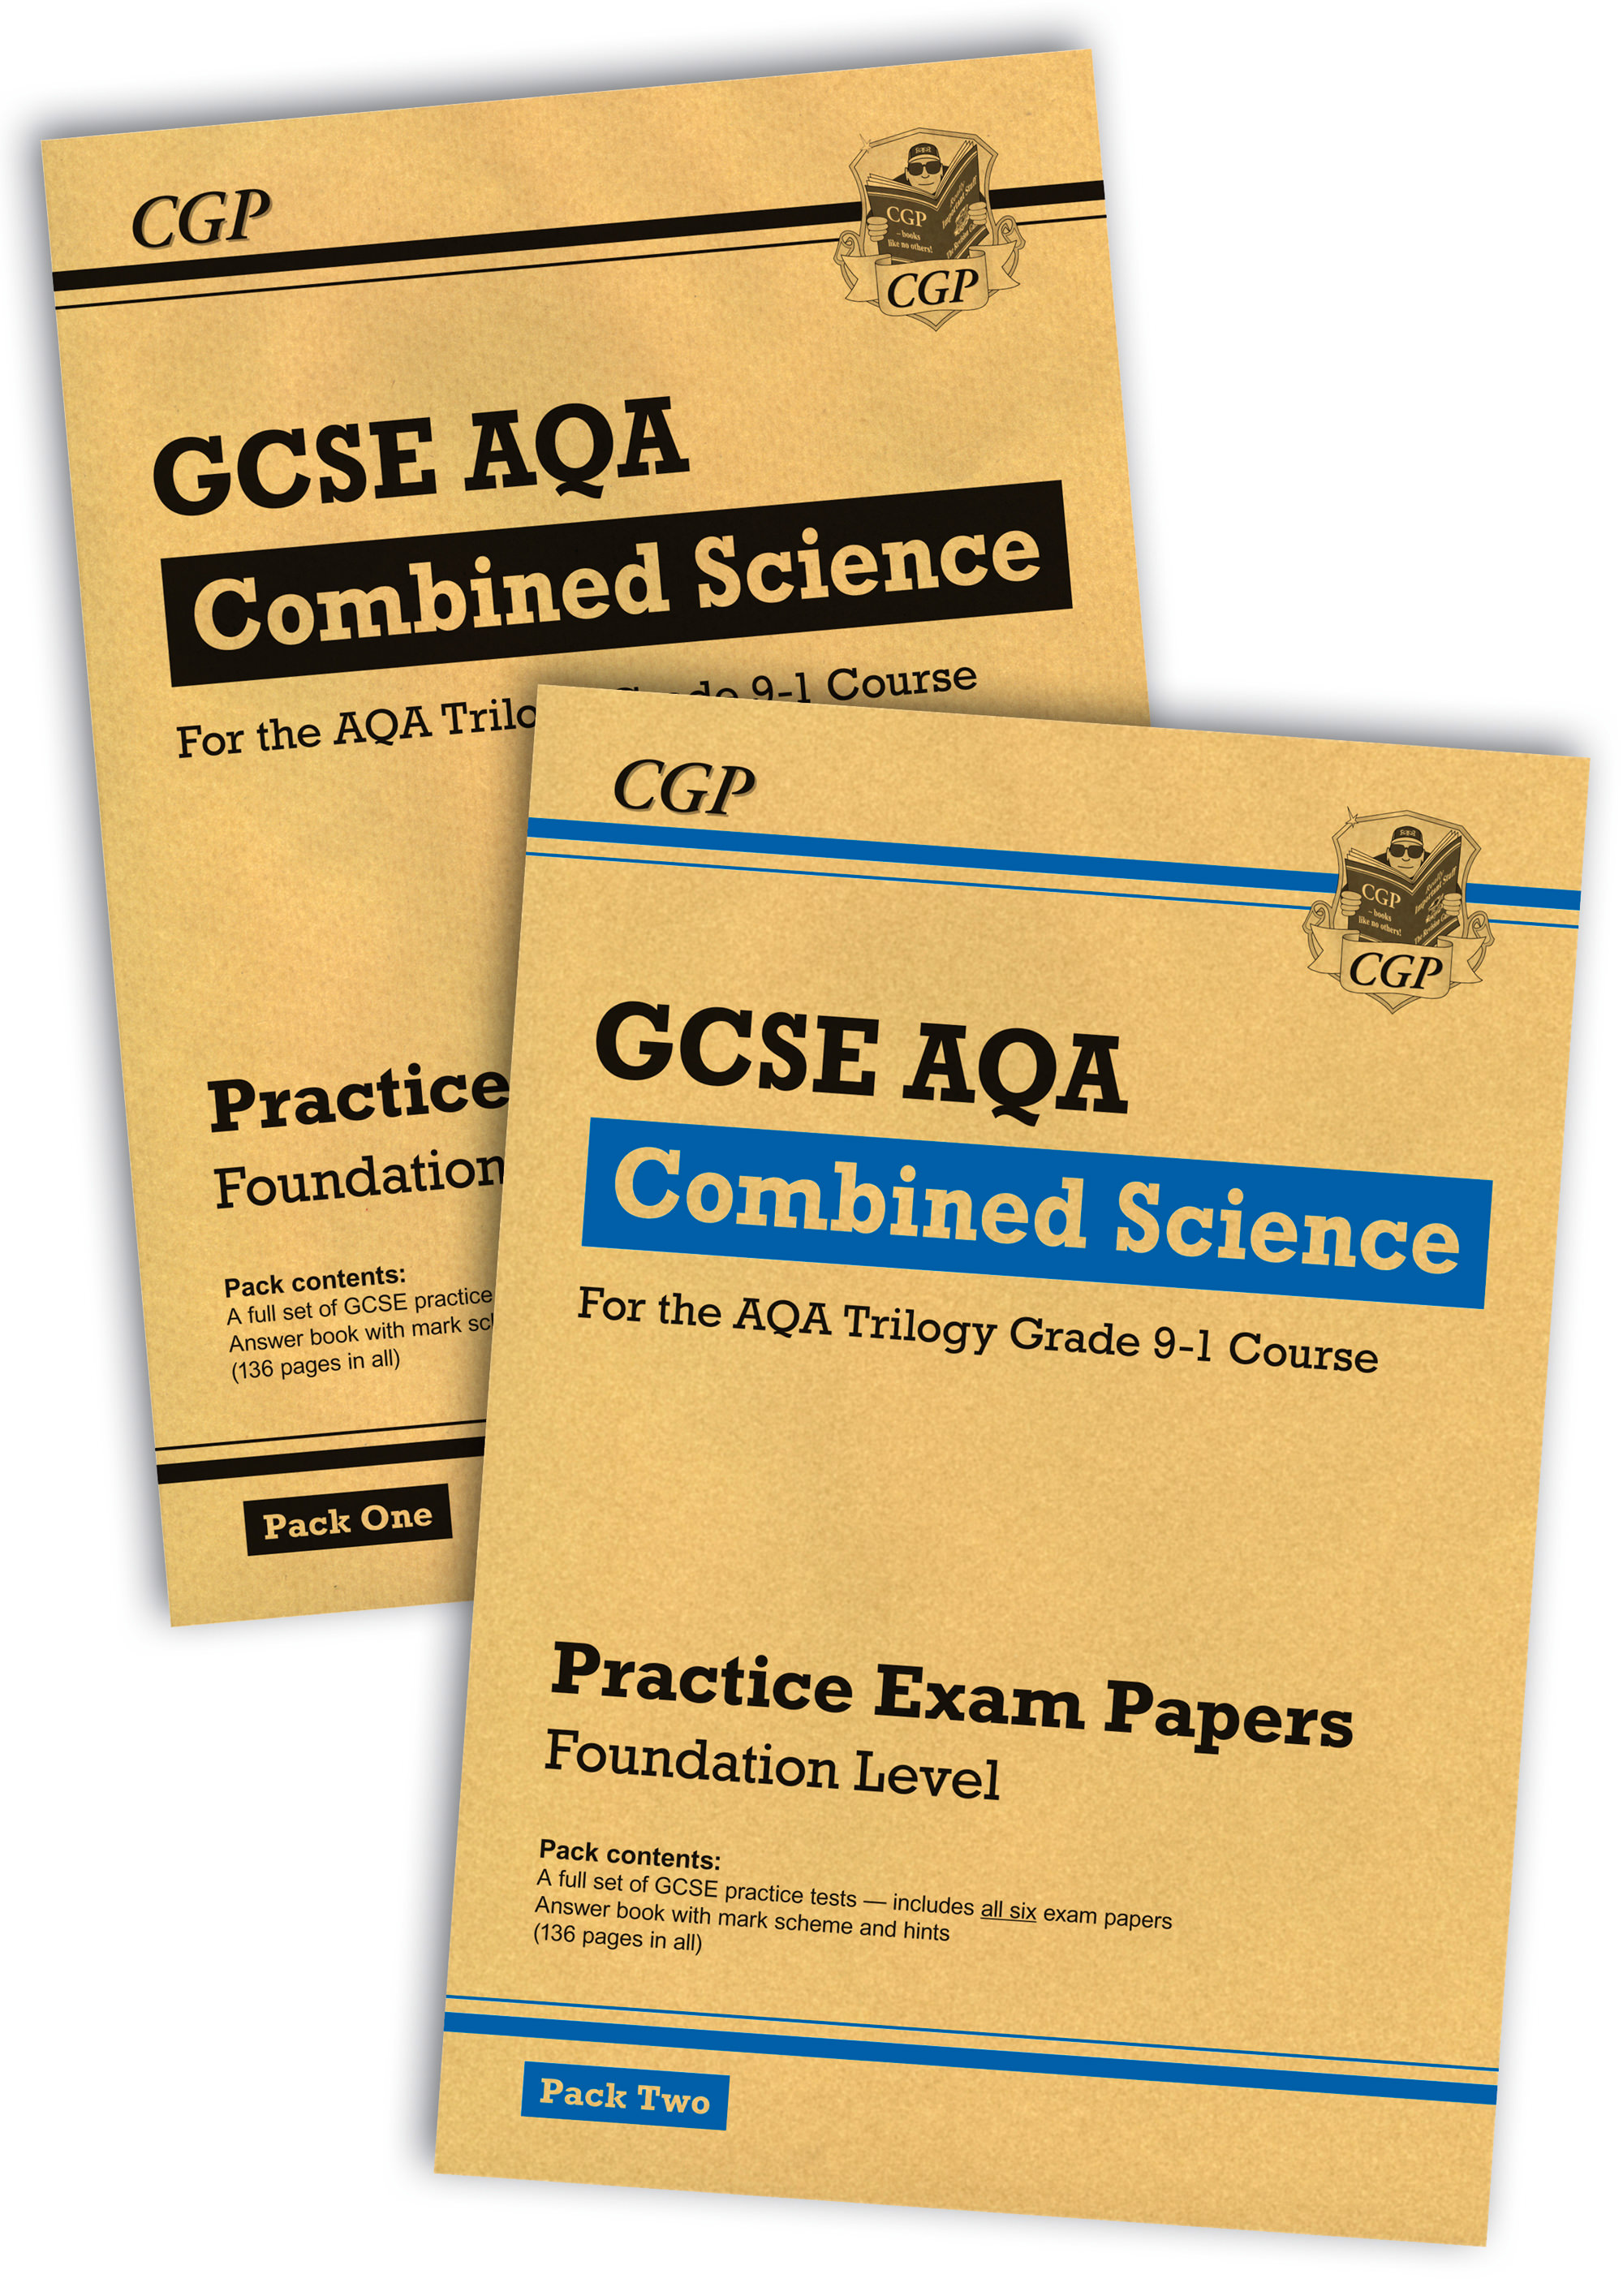 SAFBP41 - New Grade 9-1 GCSE Combined Science AQA Practice Papers: Foundation Pack 1 & 2 Bundle